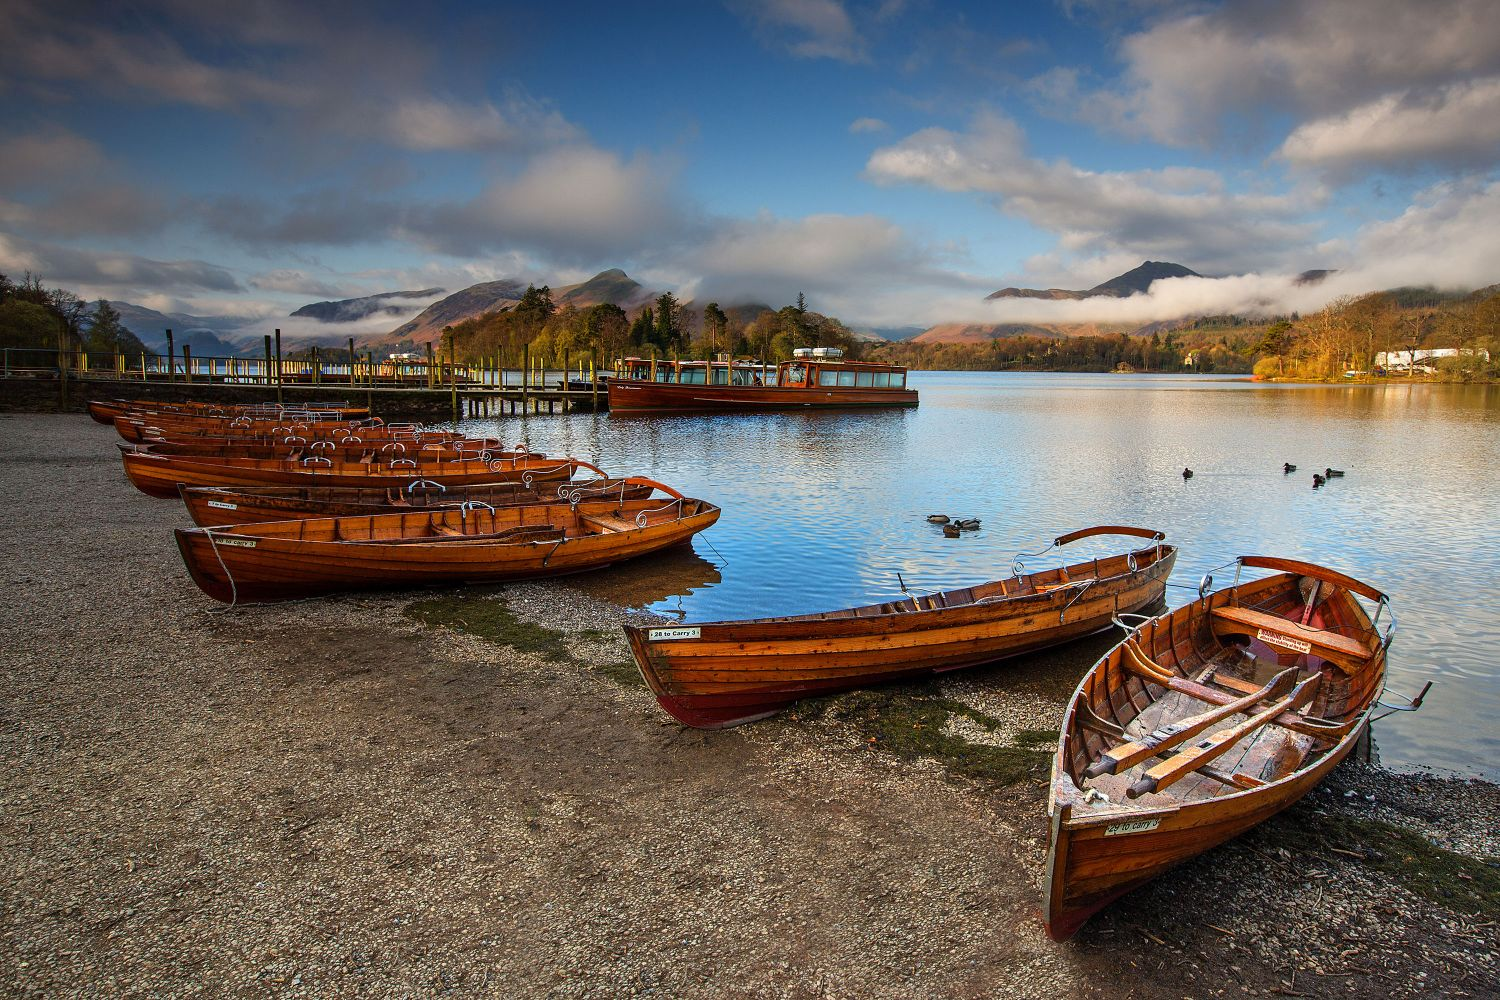 Start of a new day at Keswick Boat Landings